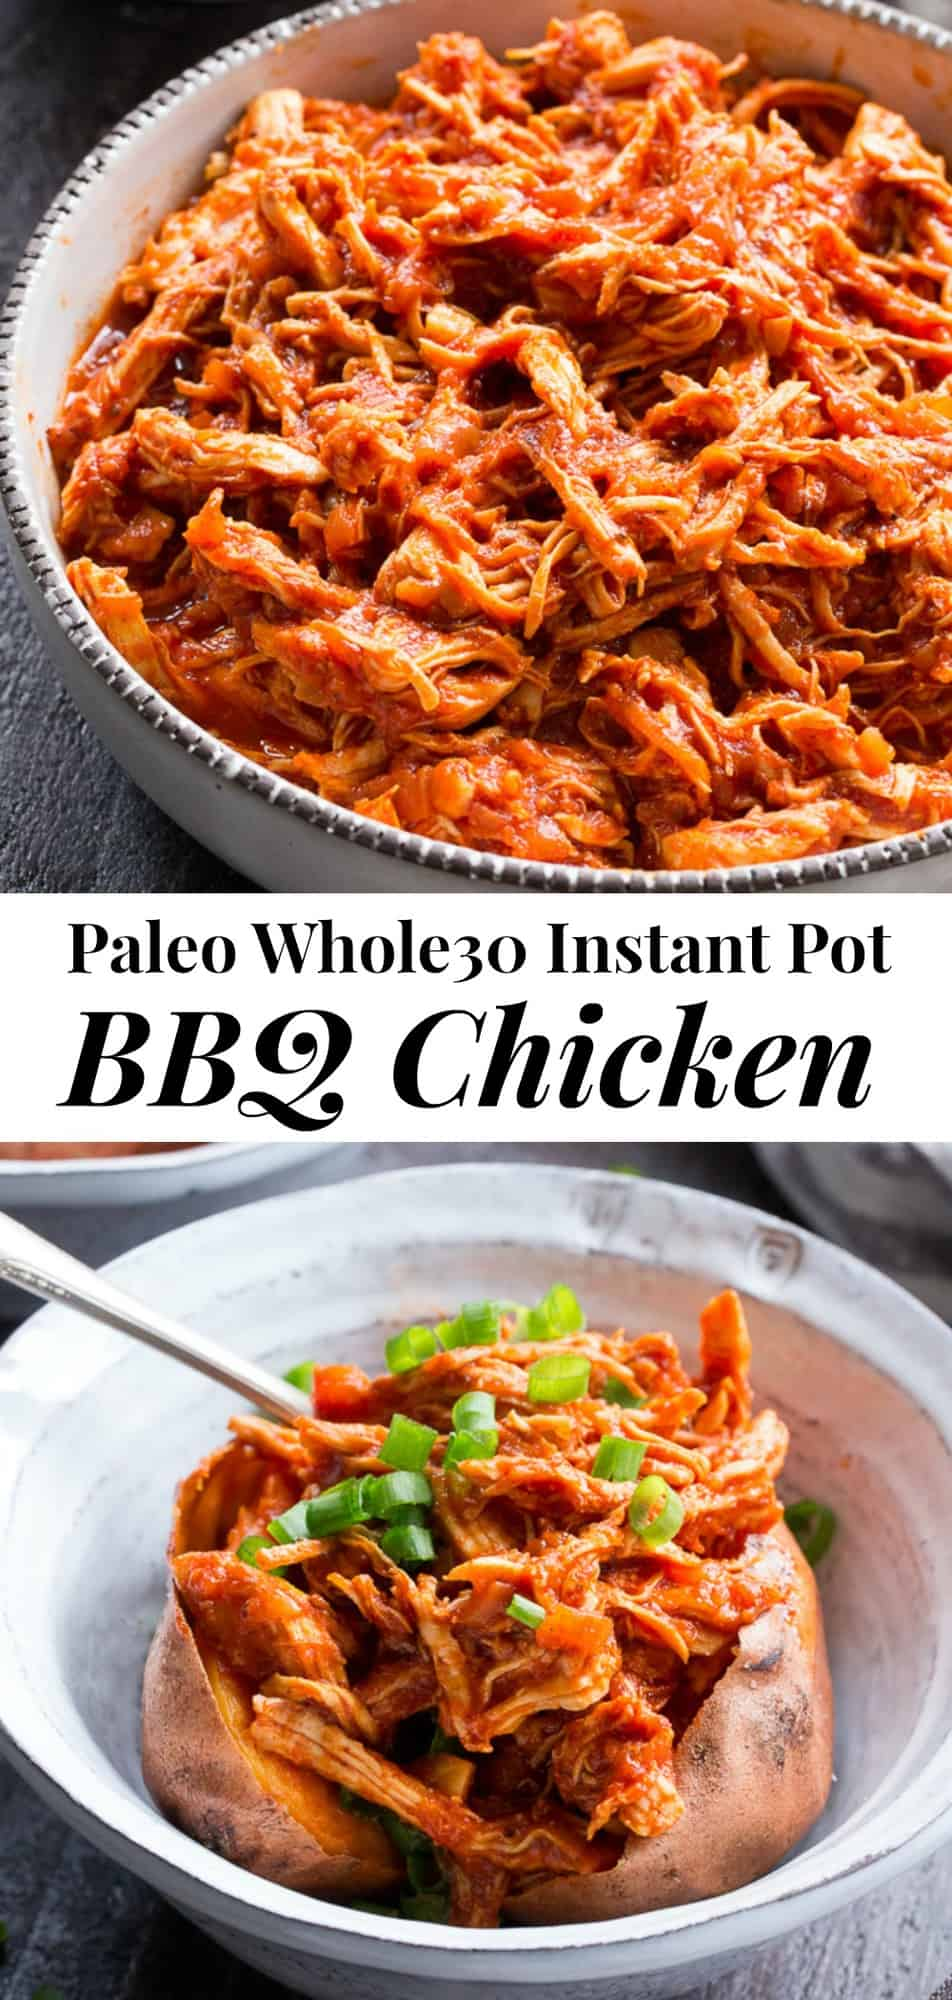 This simple Paleo and Whole30 Instant Pot BBQ Chicken is packed with flavor and perfect over a sweet potato or your favorite greens! An easy homemade BBQ sauce is cooked right in with the chicken for a meal that's ready in 20 minutes - perfect for weeknight dinners and family approved! #whole30 #paleo #cleaneating